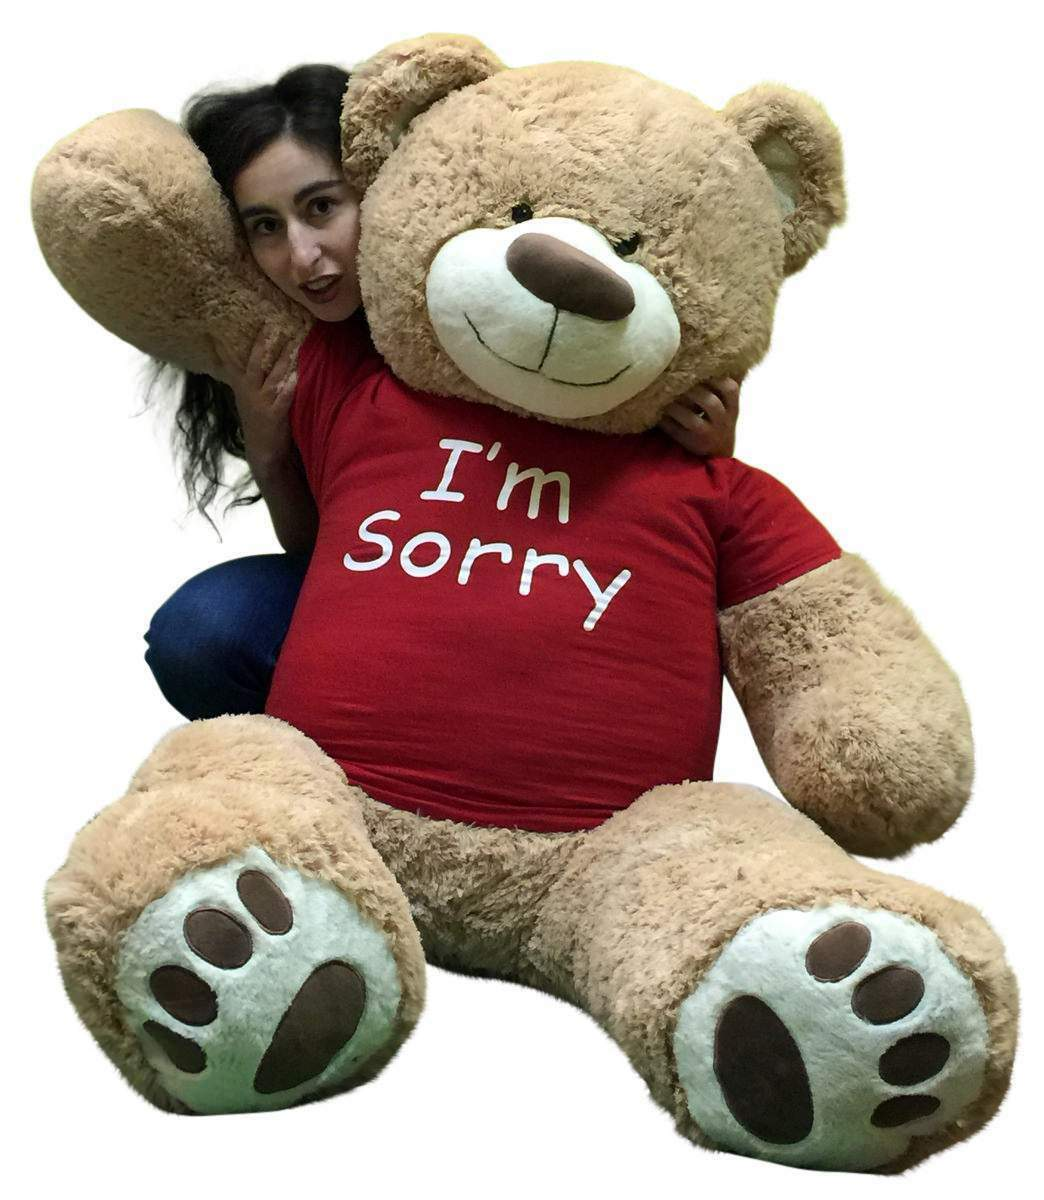 I'm Sorry Giant Teddy Bear 5 Feet Tall Tan Farbe Soft Wears I'M SORRY T shirt